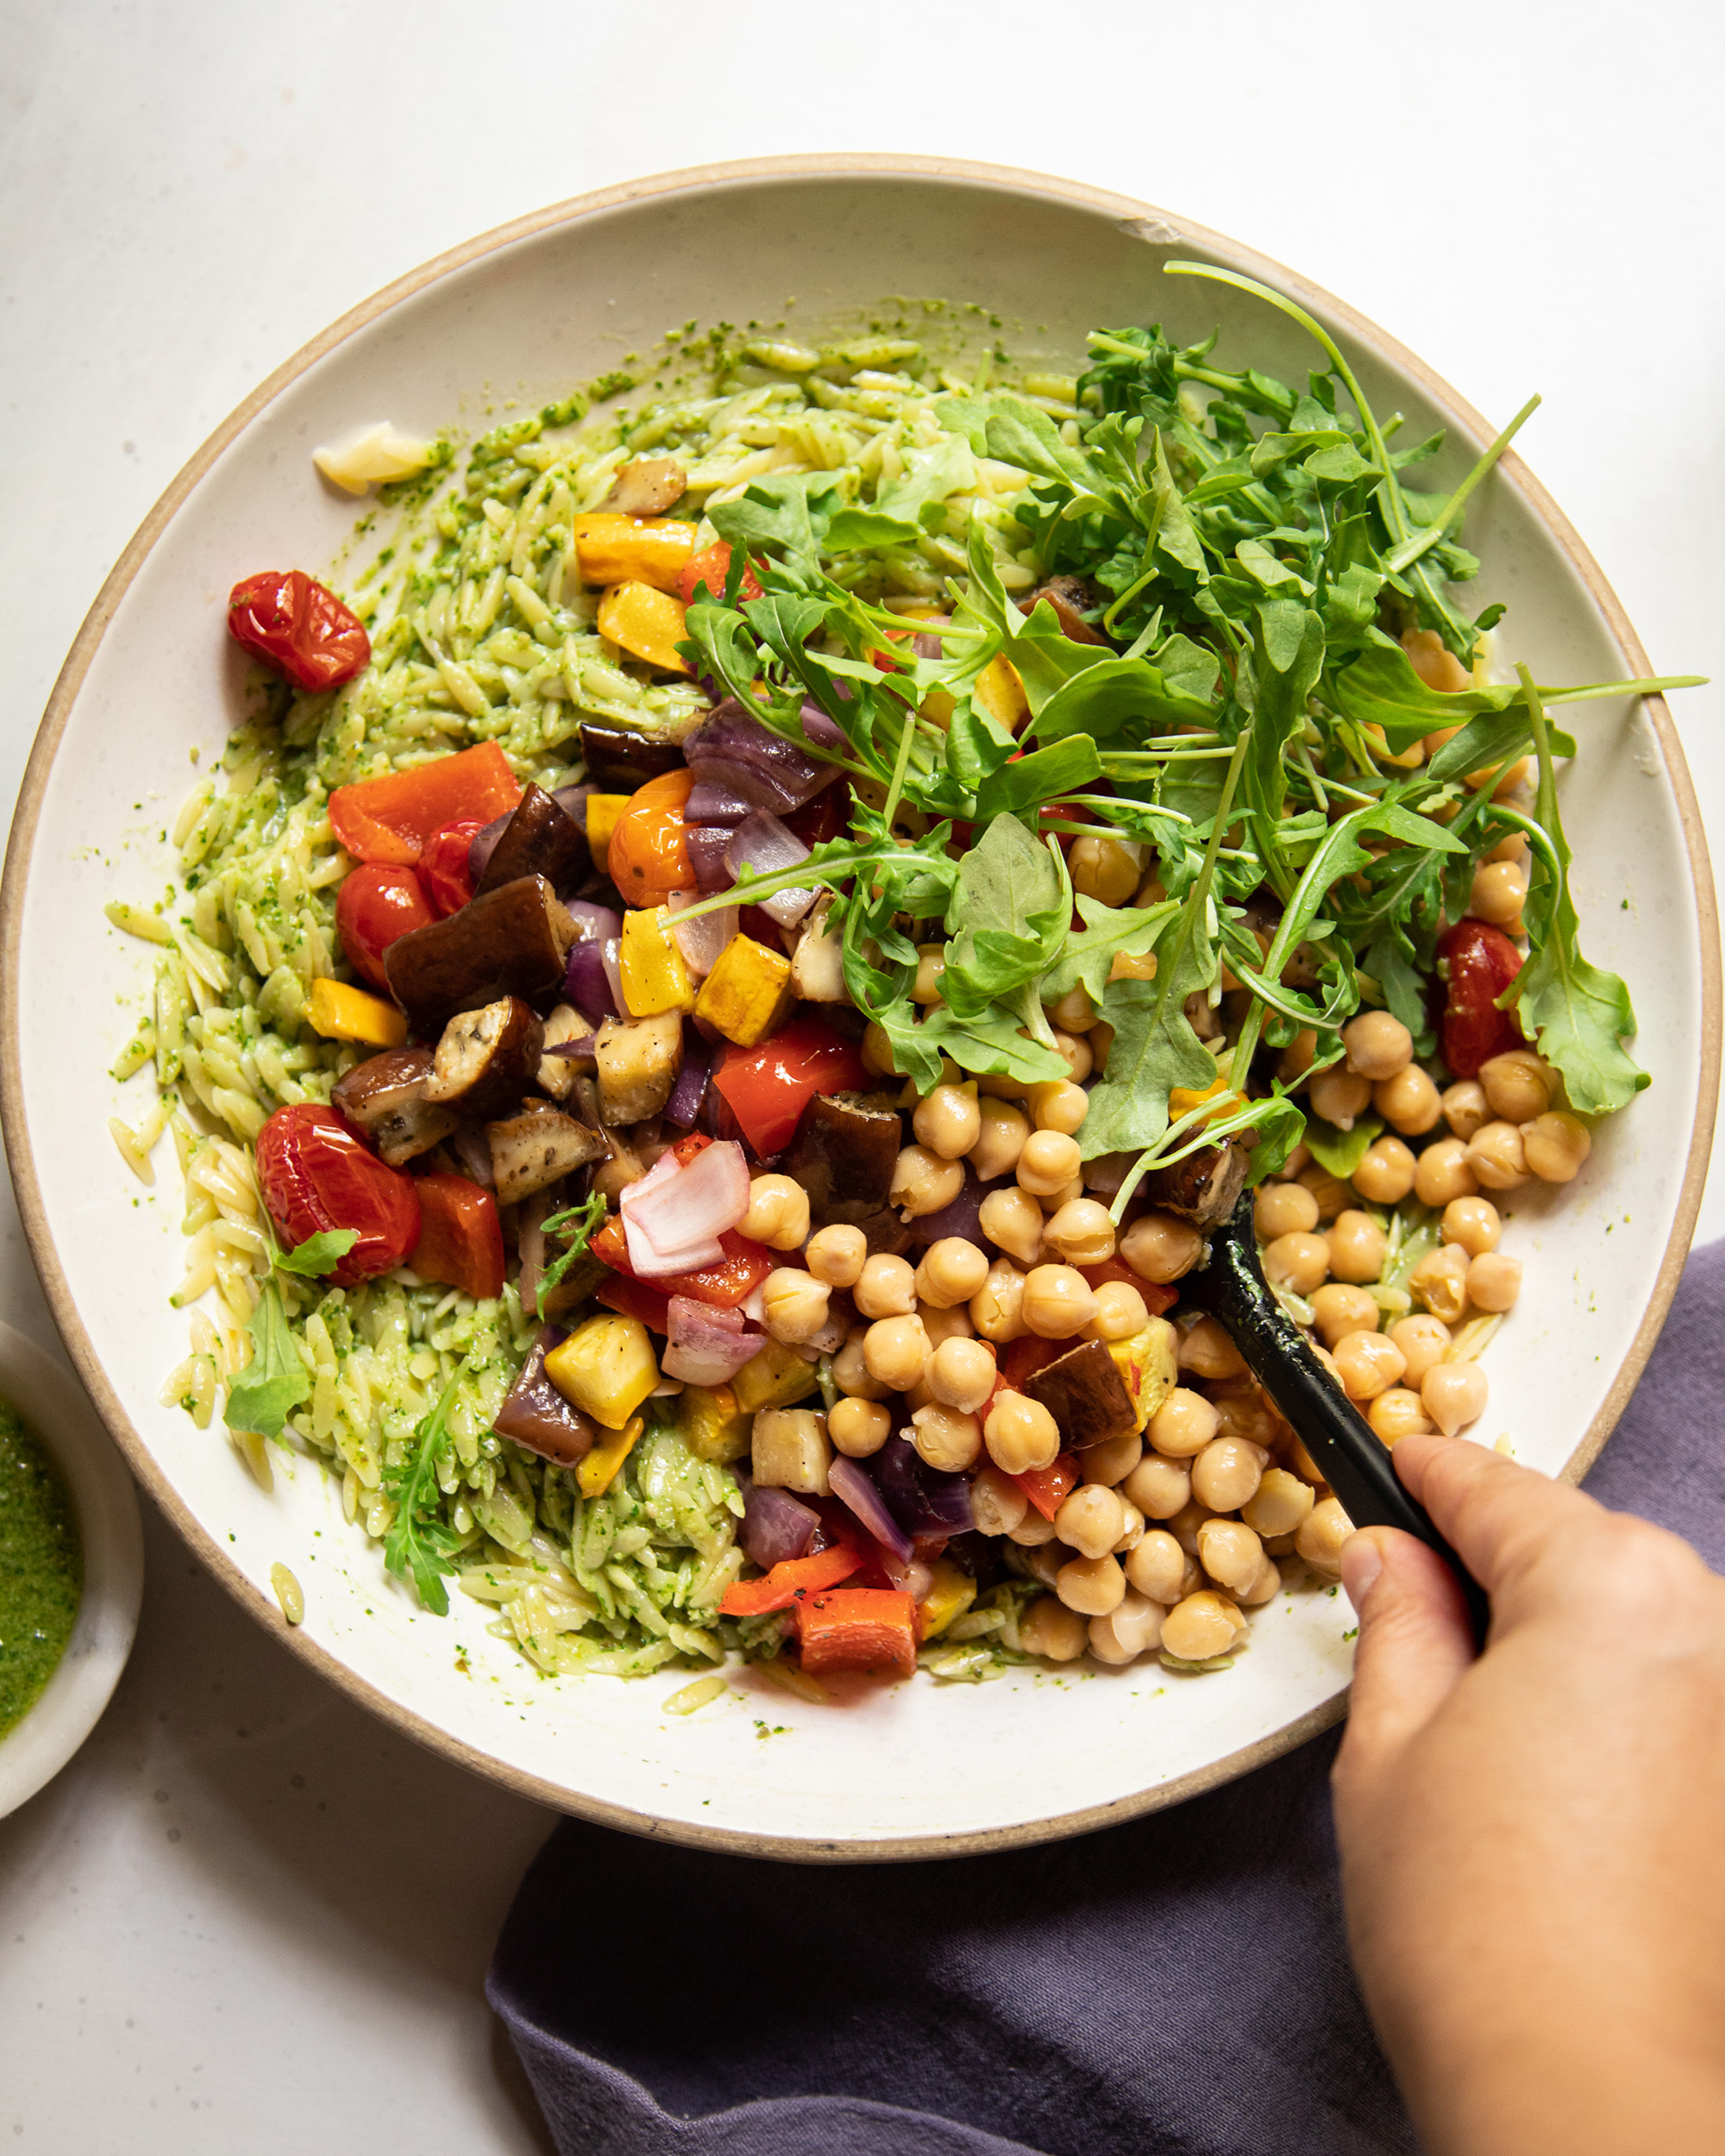 An overhead image shows a hand stirring together an orzo salad with vegetables and chickpeas.